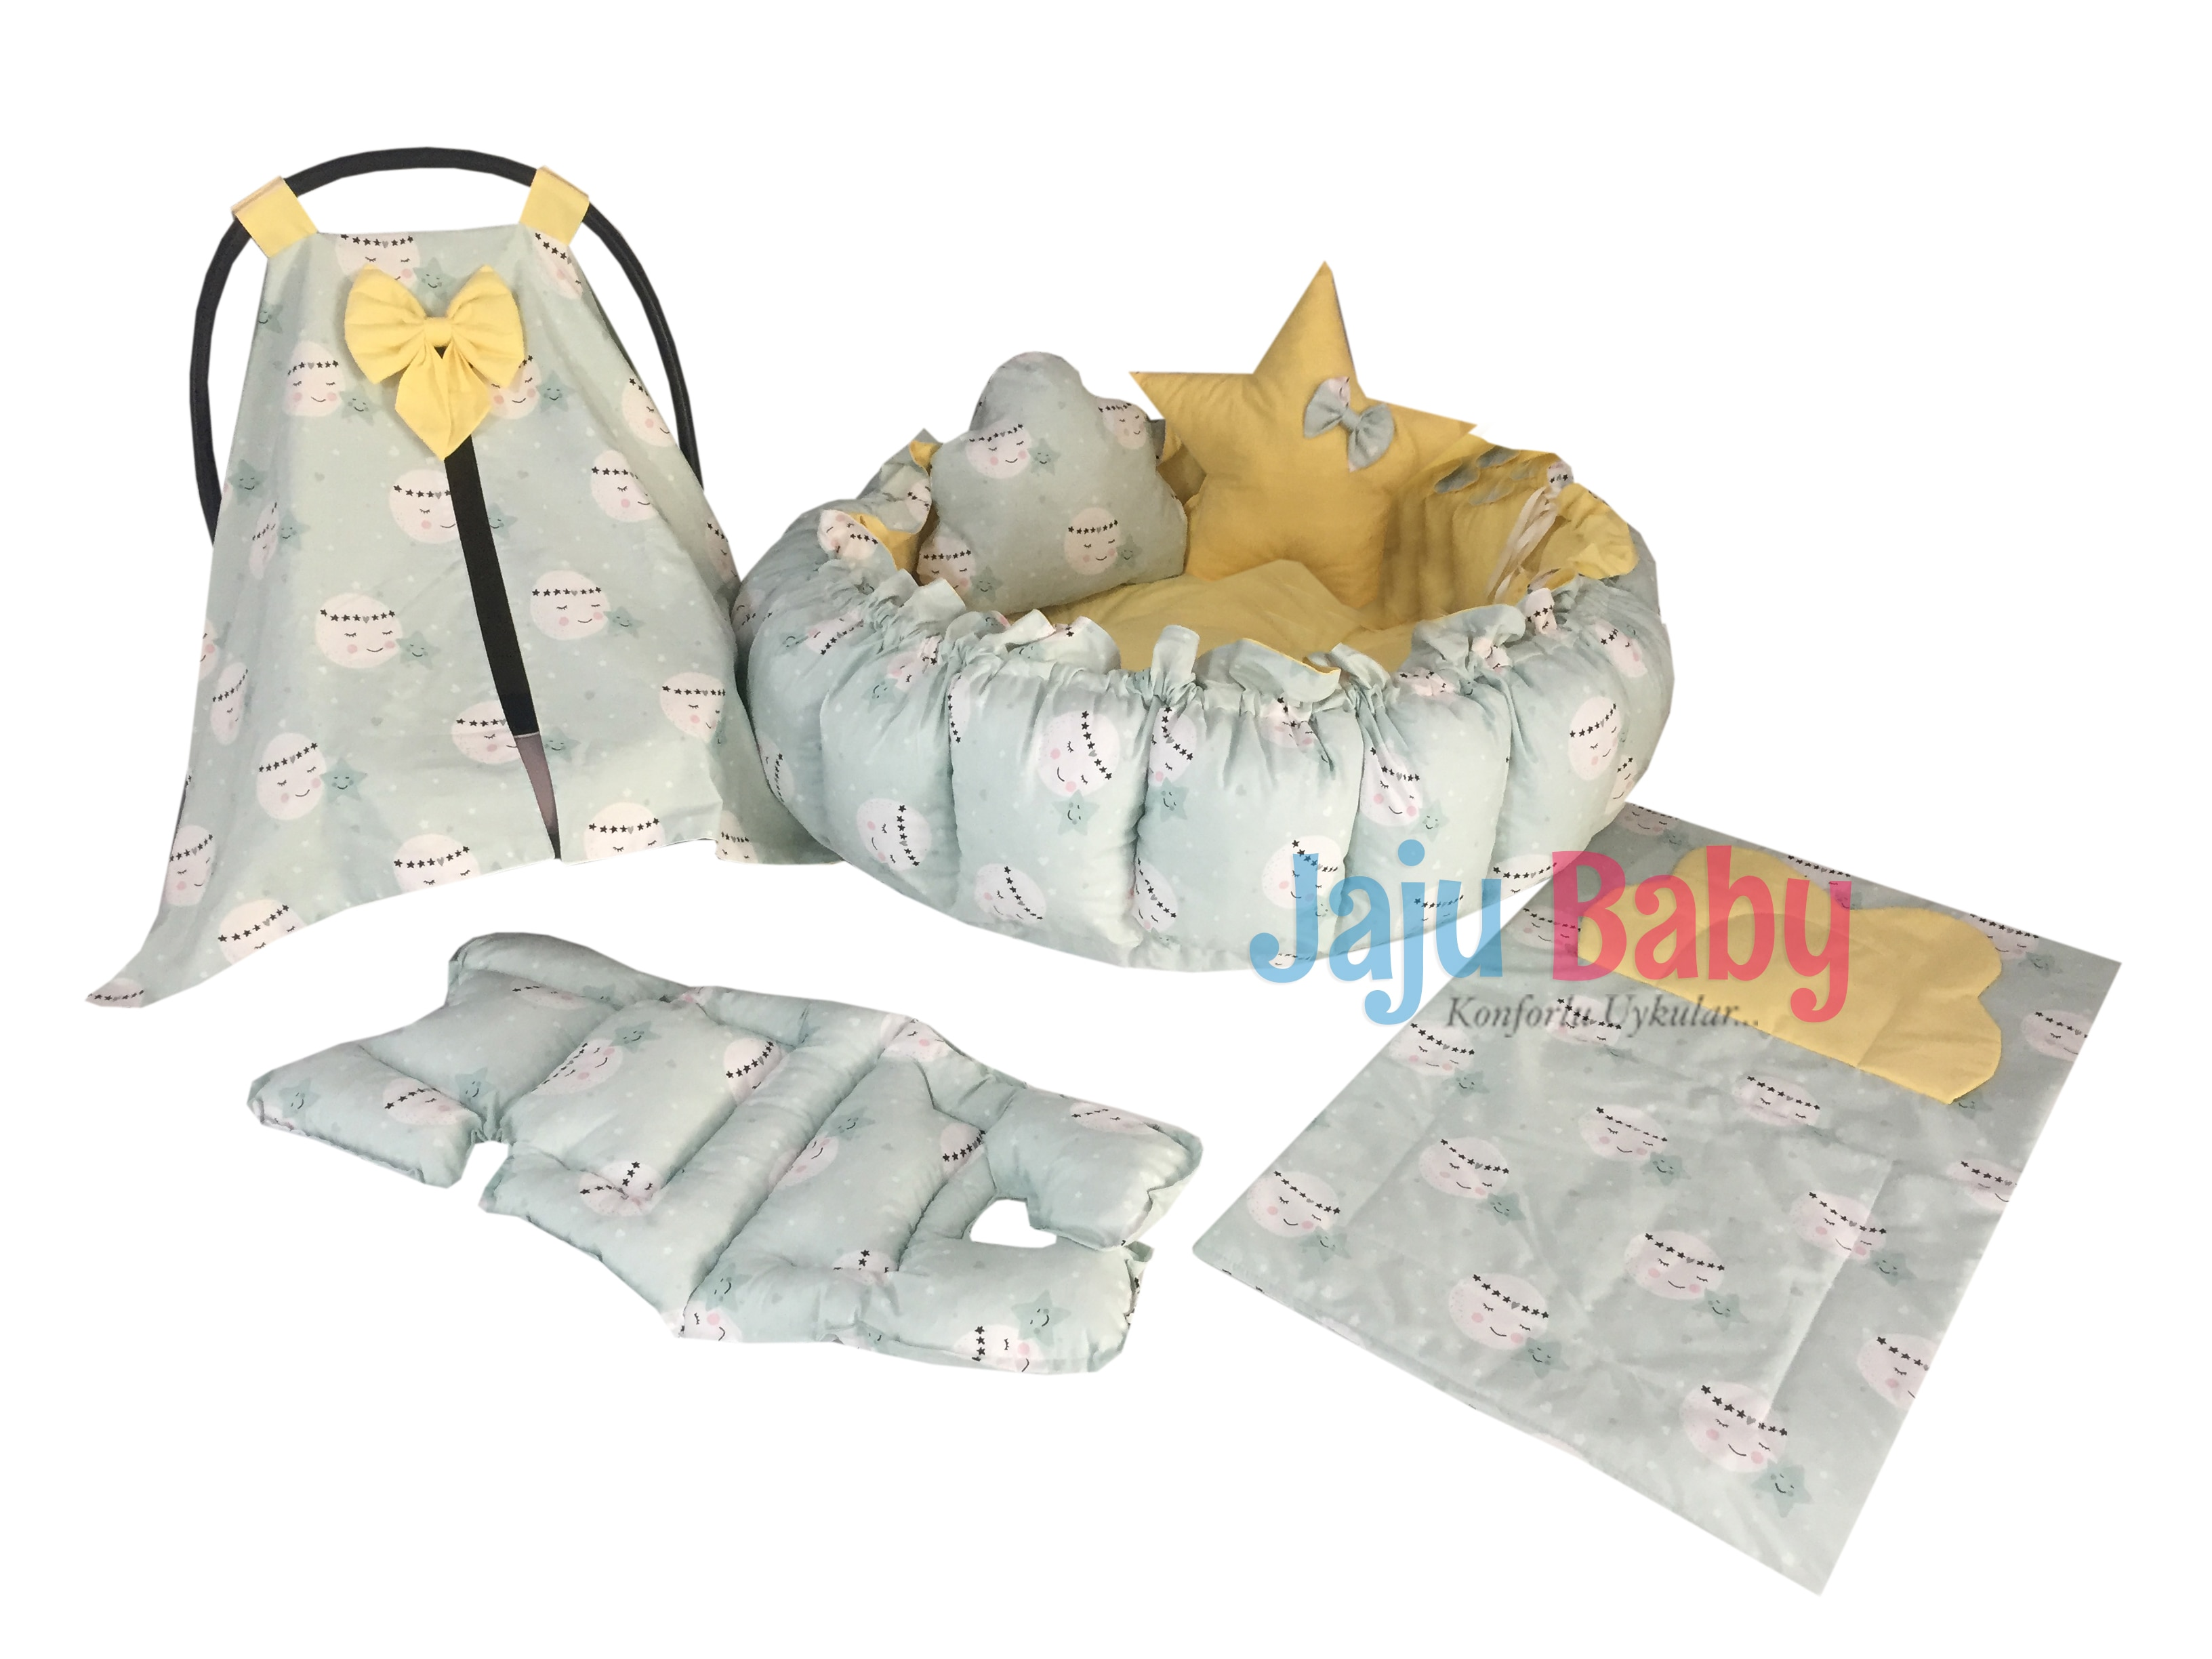 Jaju Baby Green Full Moon Pattern Set Design Luxury Play Mat Babynest, Maternal Baby Bed, Retractable Play Mat